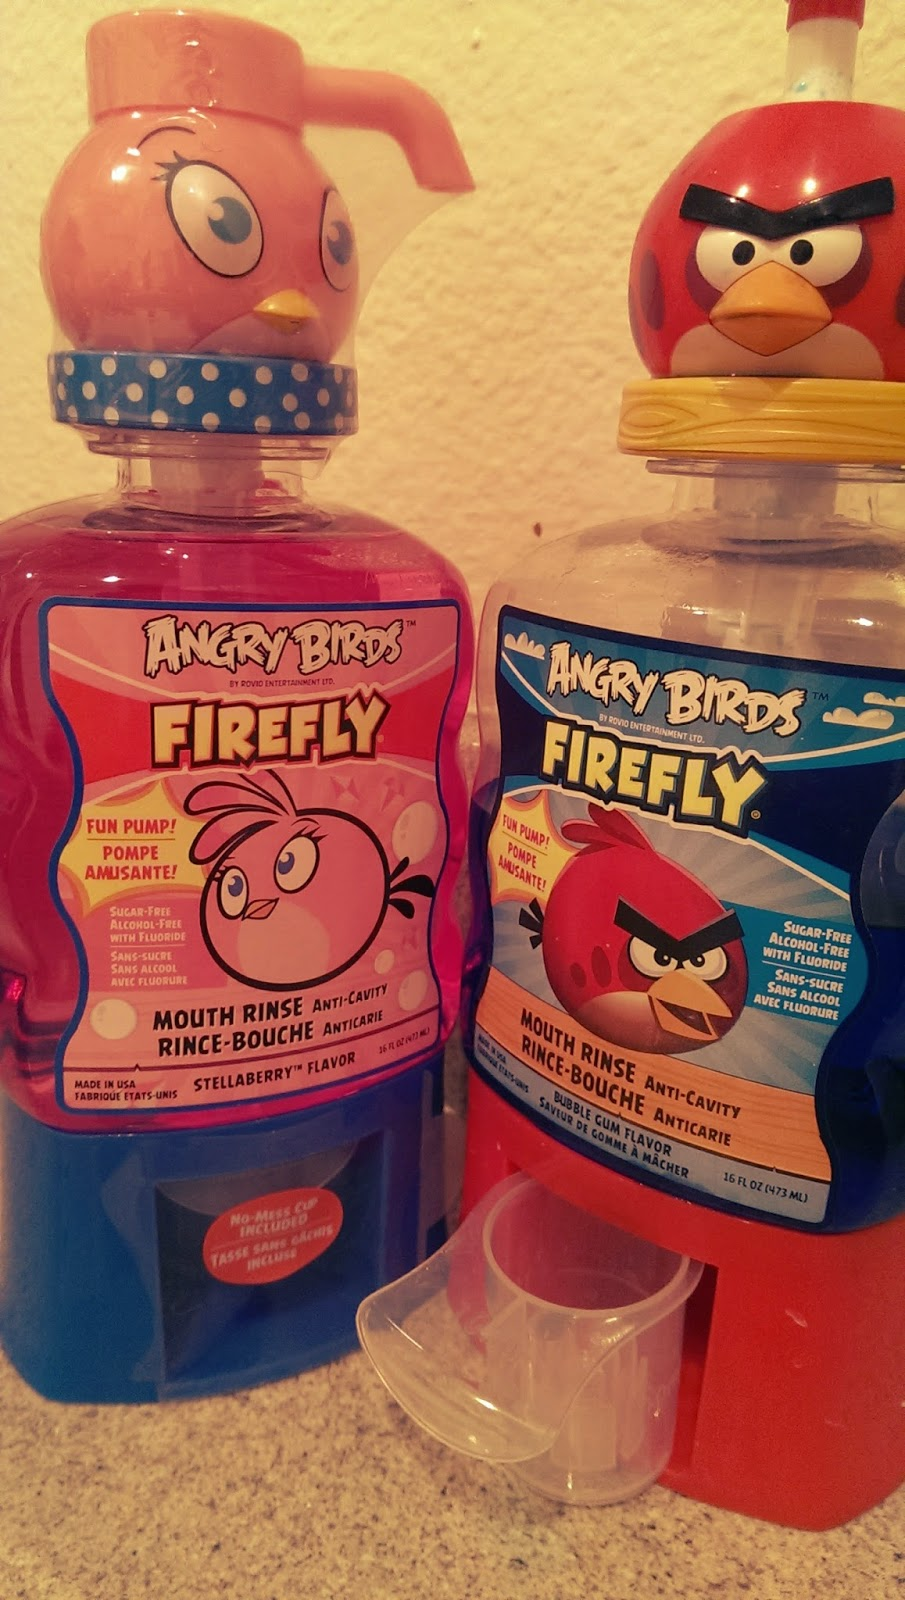 Kids%2BMouthwash New Firefly Angry Birds Anti-Cavity Mouth Rinse Review - Best Anticavity Mouthwash